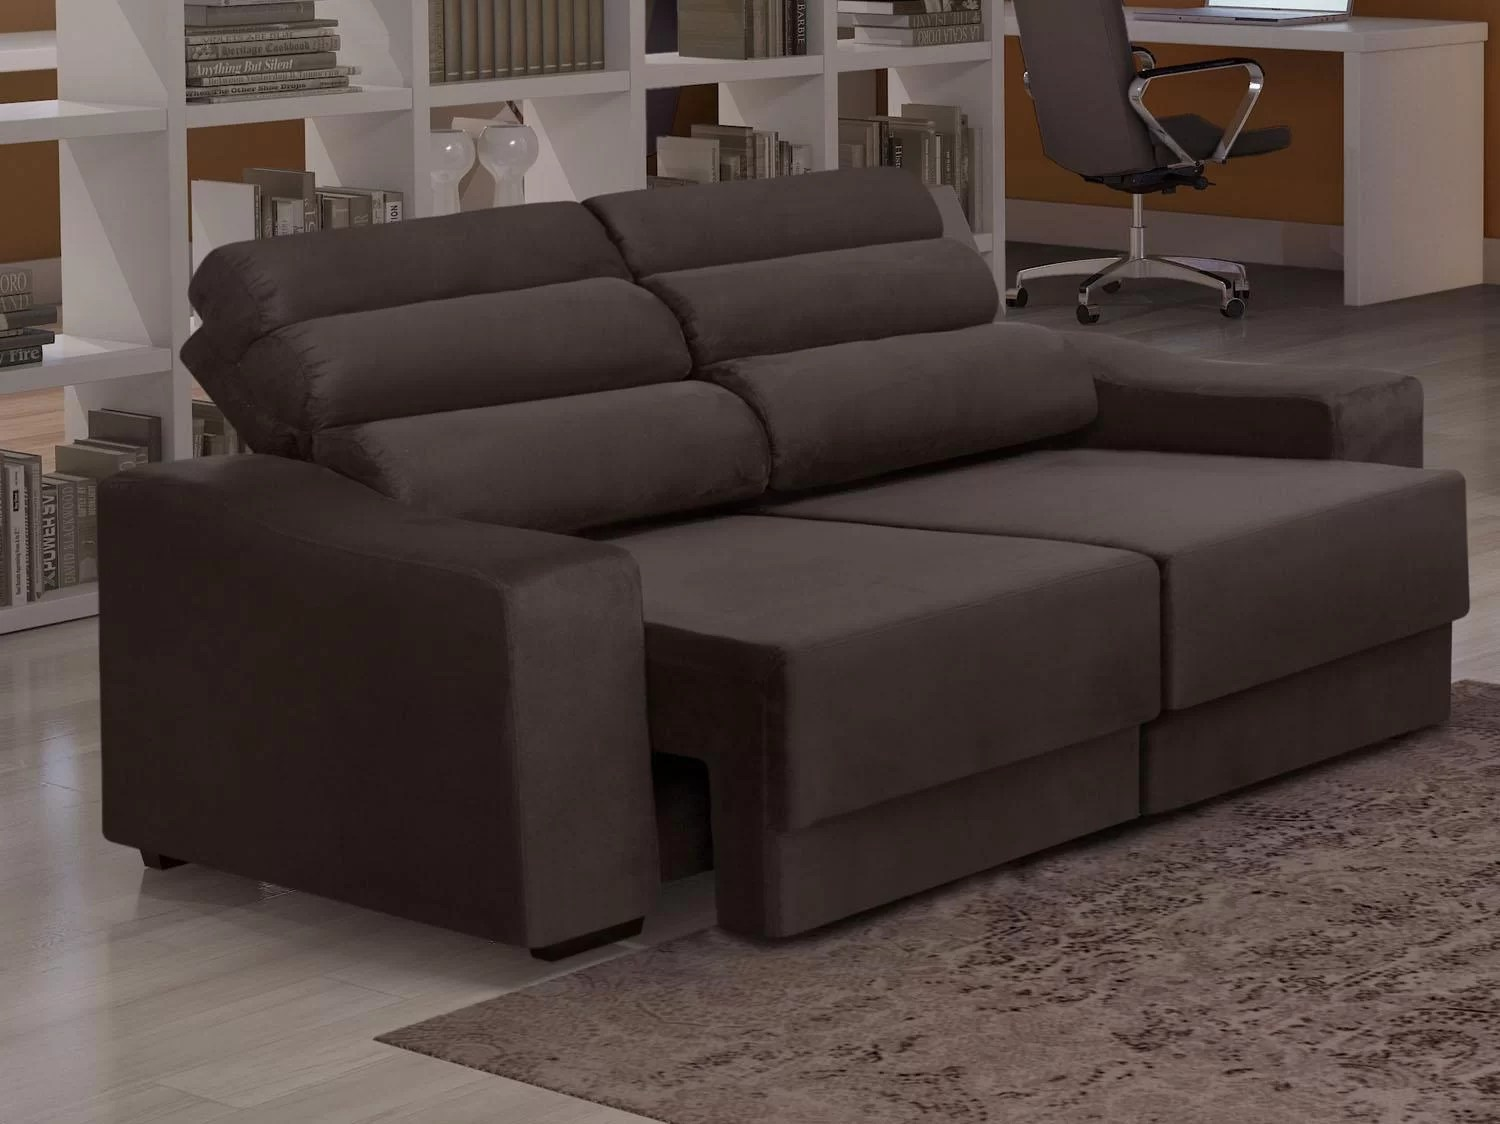 Sofa Retratil E Reclinavel Impermeavel Sofá Retrátil E Reclinável 3 Lugares Sportage Somopar